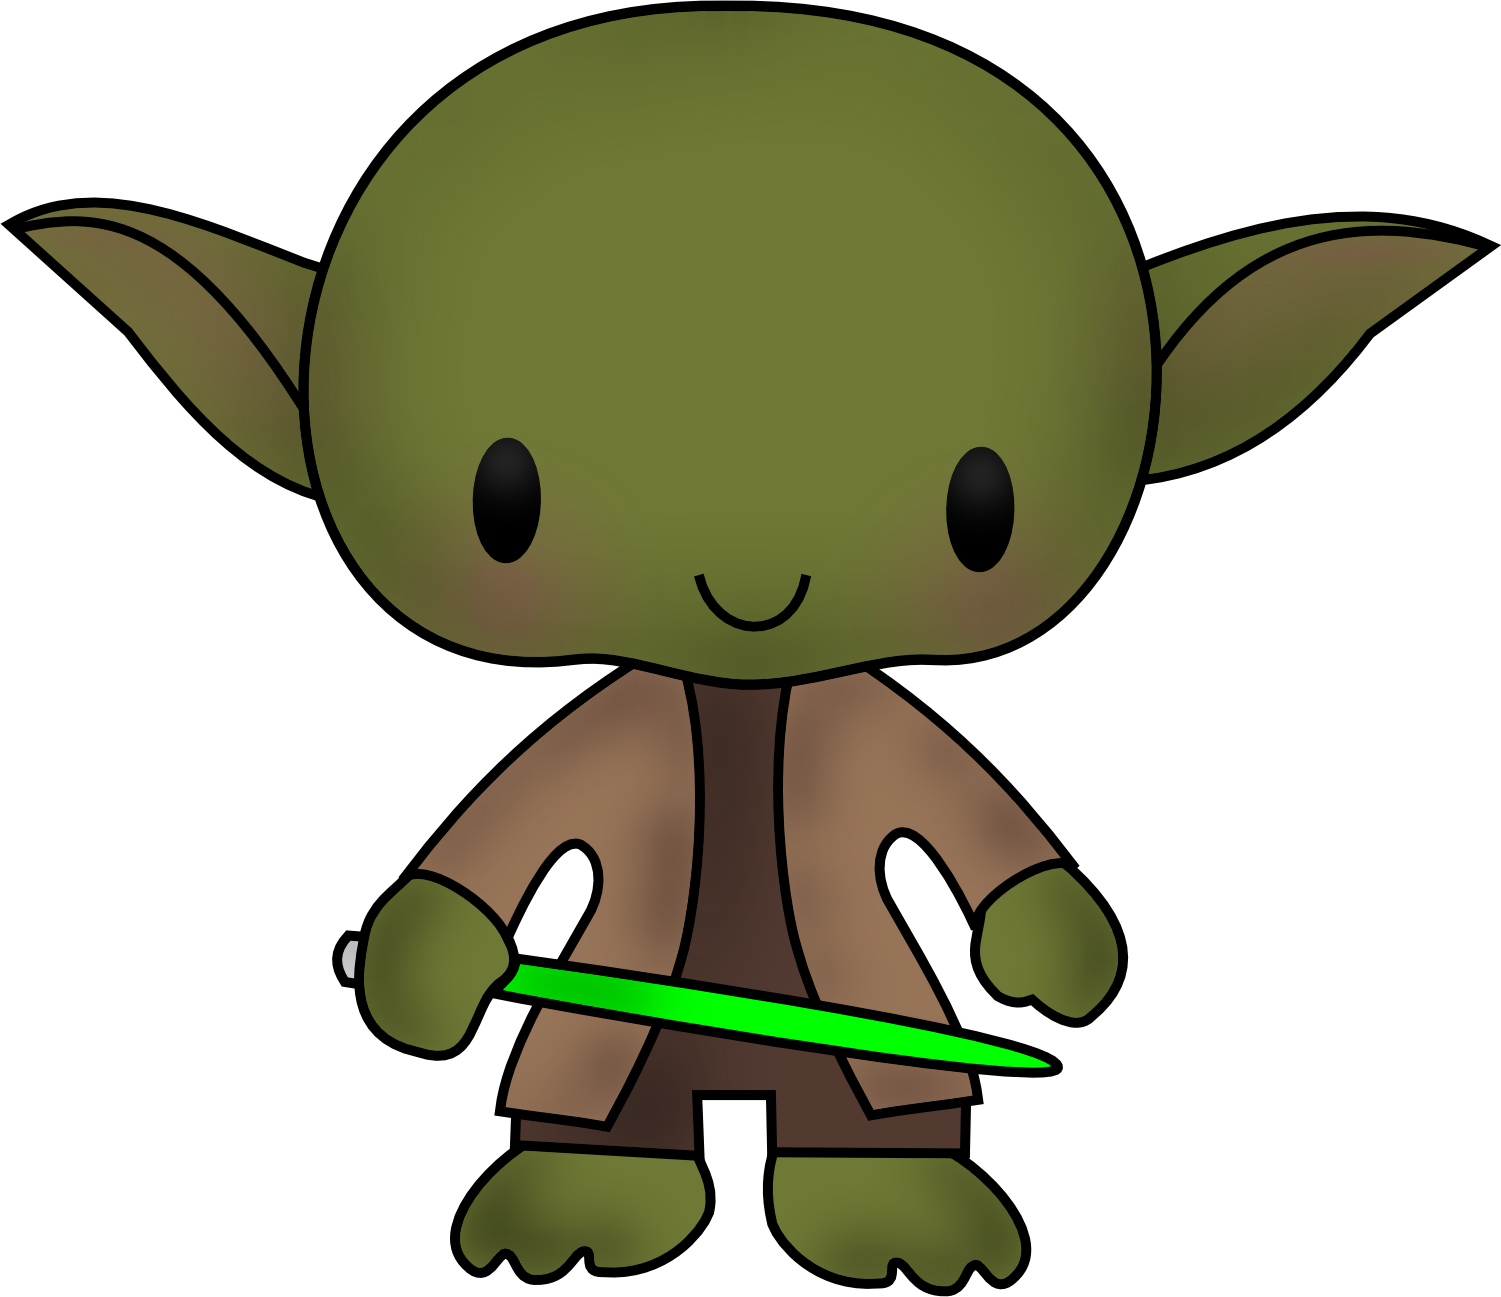 Star Wars Clipart / PNG / Yoda Darth Vader Han Solo by ClipArtisan - Baby Yoda PNG